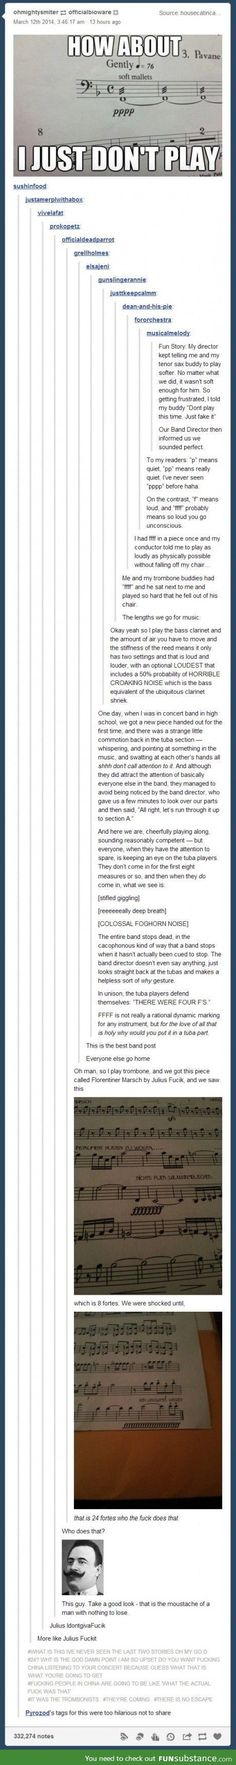 Let's have some fun with a hilarious band post. It's long, but worth the read! Hahaha I'm crying I'm laughing so hard